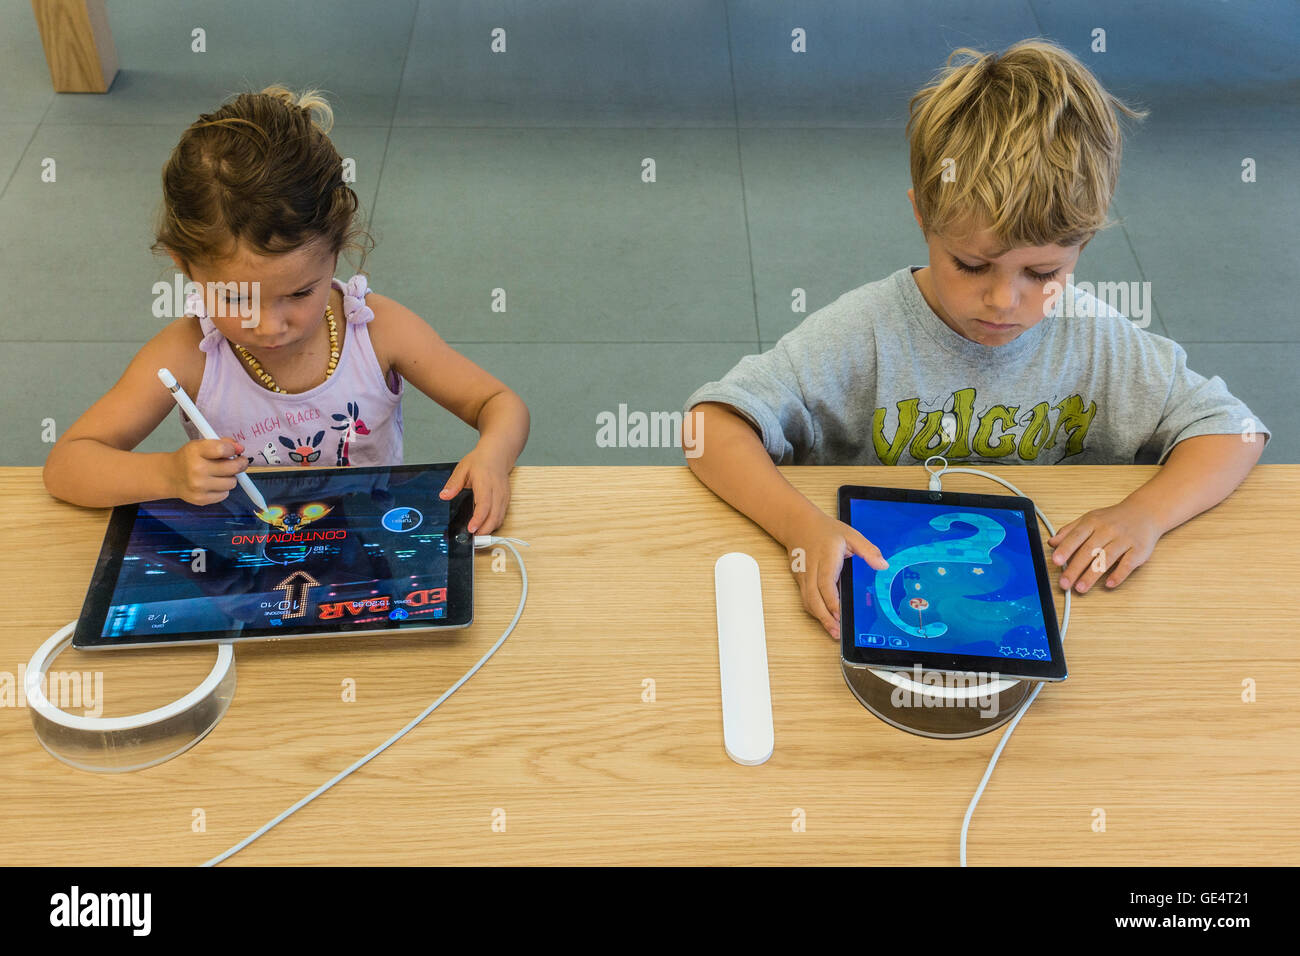 Two children, 6-8 years old try out iPads at the Apple Store on State Street in Santa Barbara, California. - Stock Image